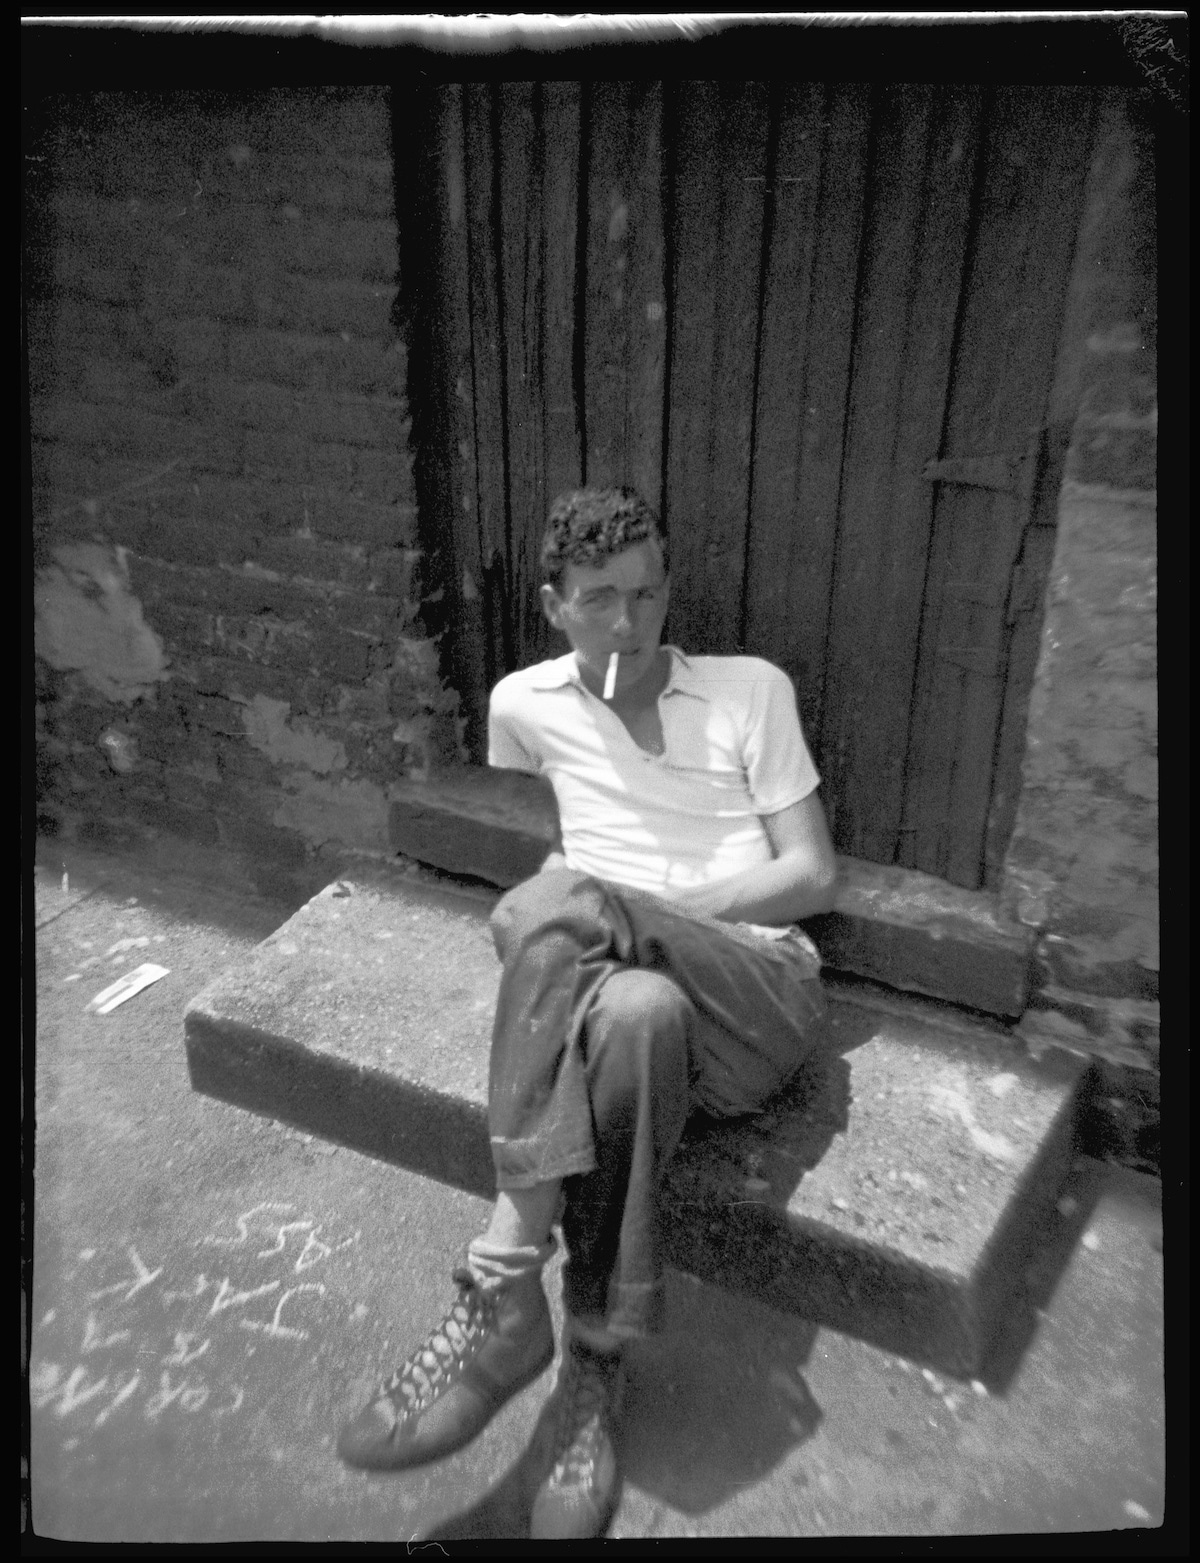 Man in Chicago in the 1930s with a Cigarette in His Mouth